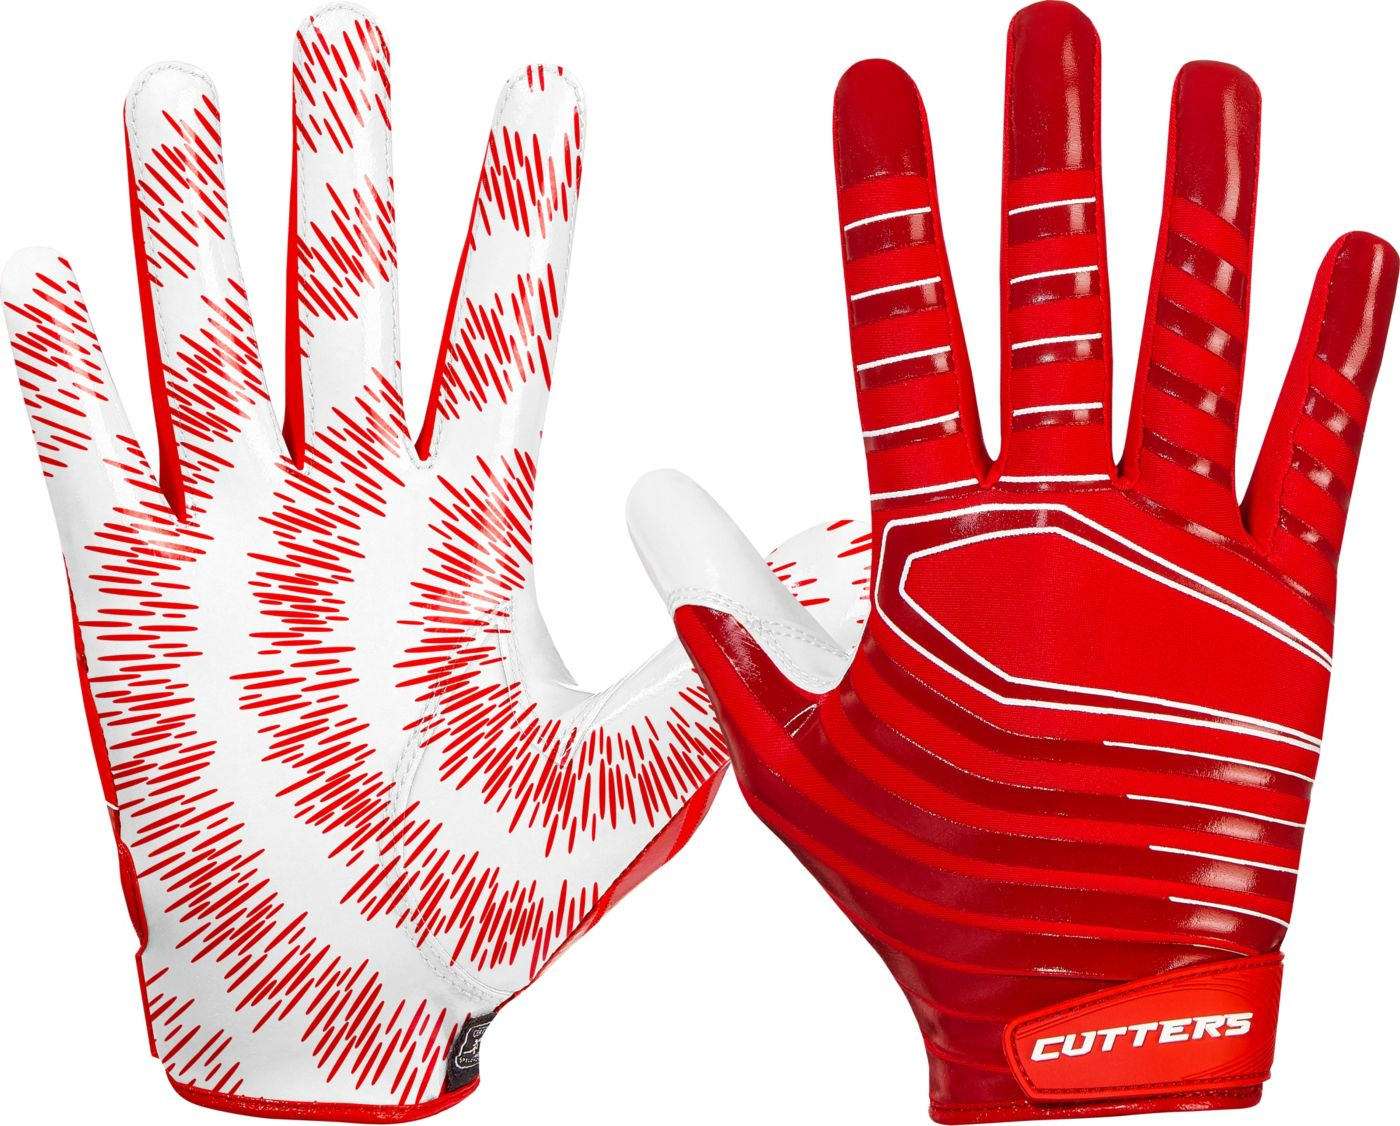 Cutters Adult Rev 3.0 Receiver Gloves